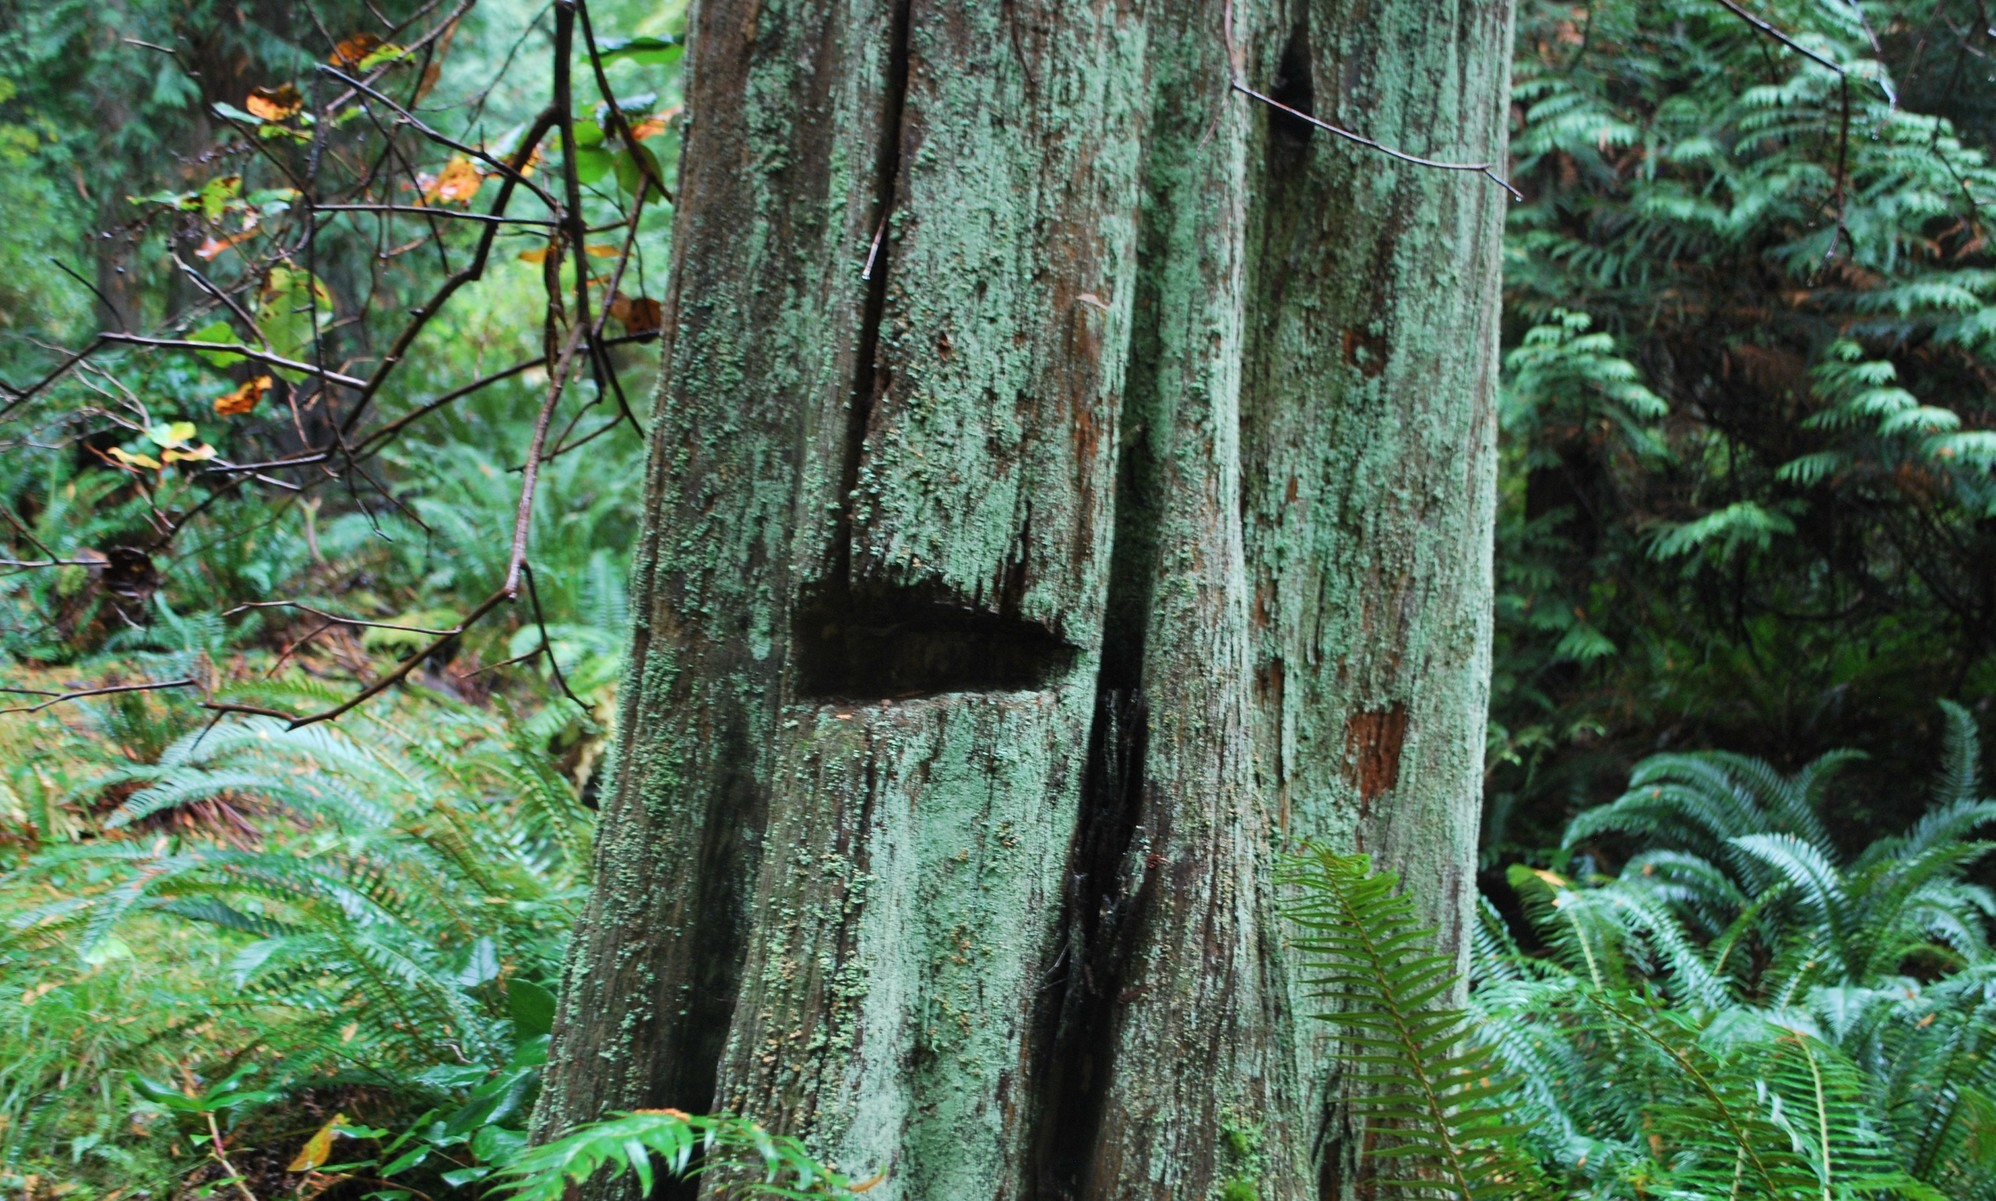 western red cedar stump with hole in the side showing evidence of past logging techniques.